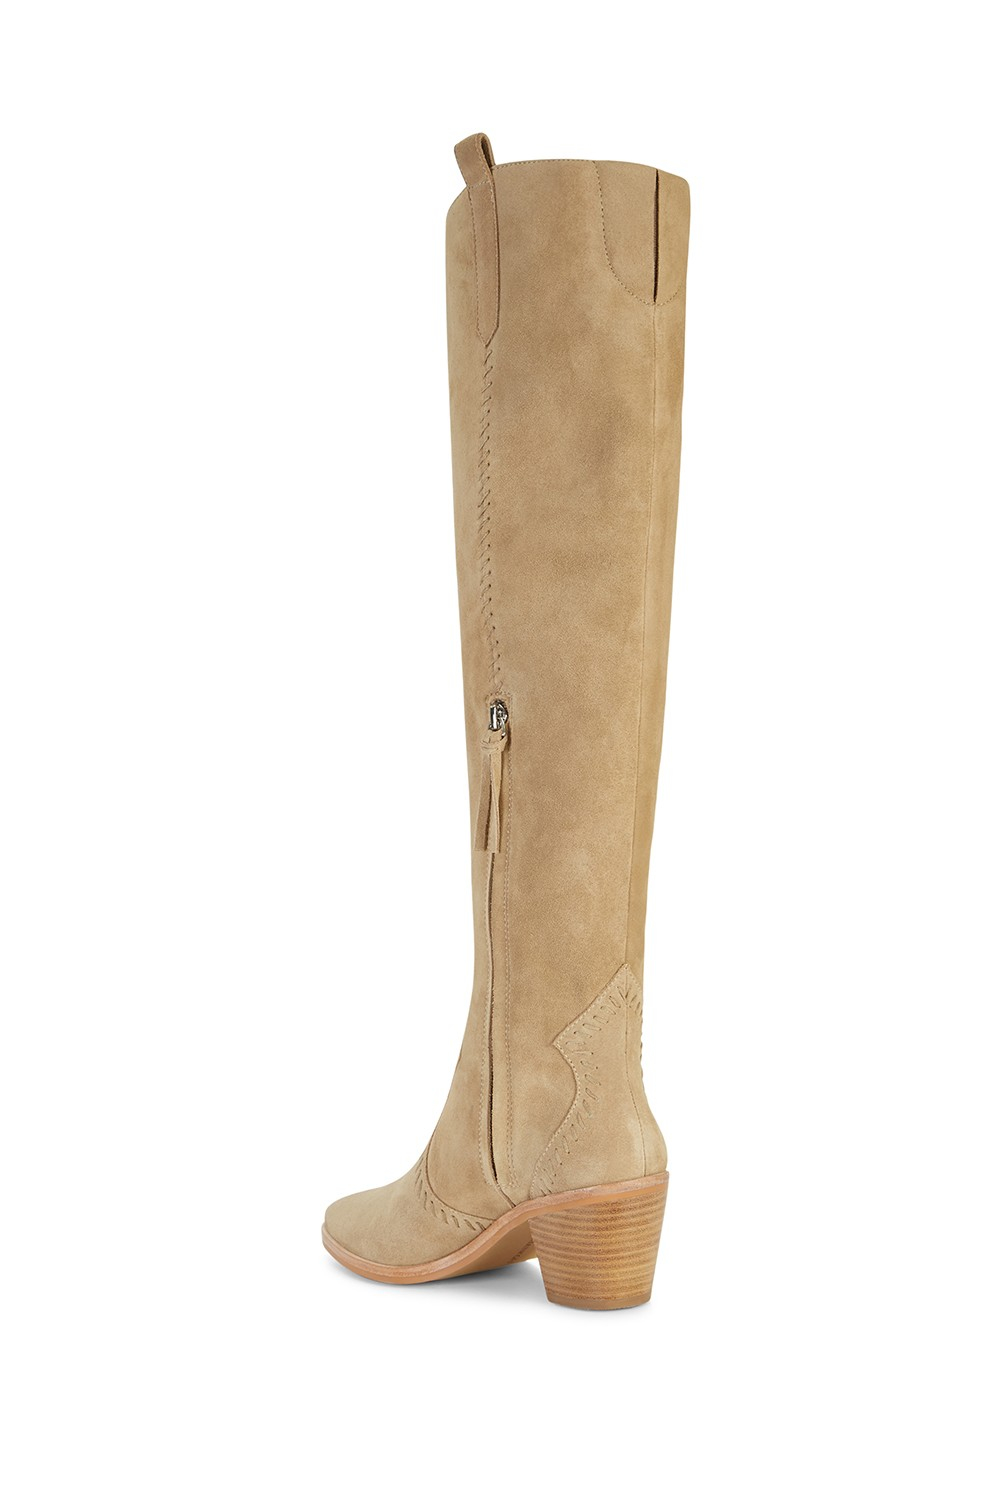 Rebecca Minkoff Leather Lizelle Boot